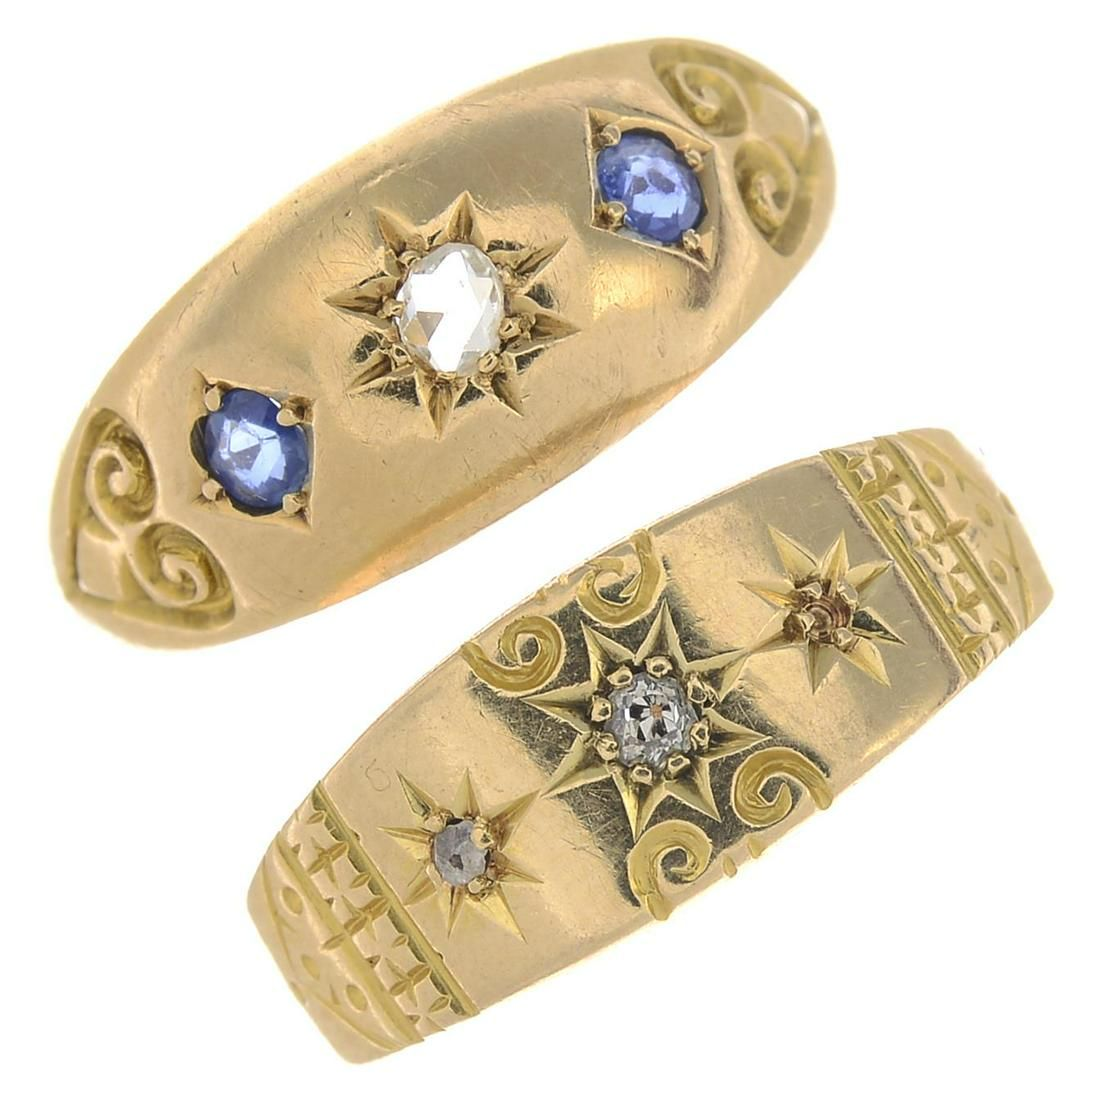 Two late Victorian 18ct gold diamond and gem-set